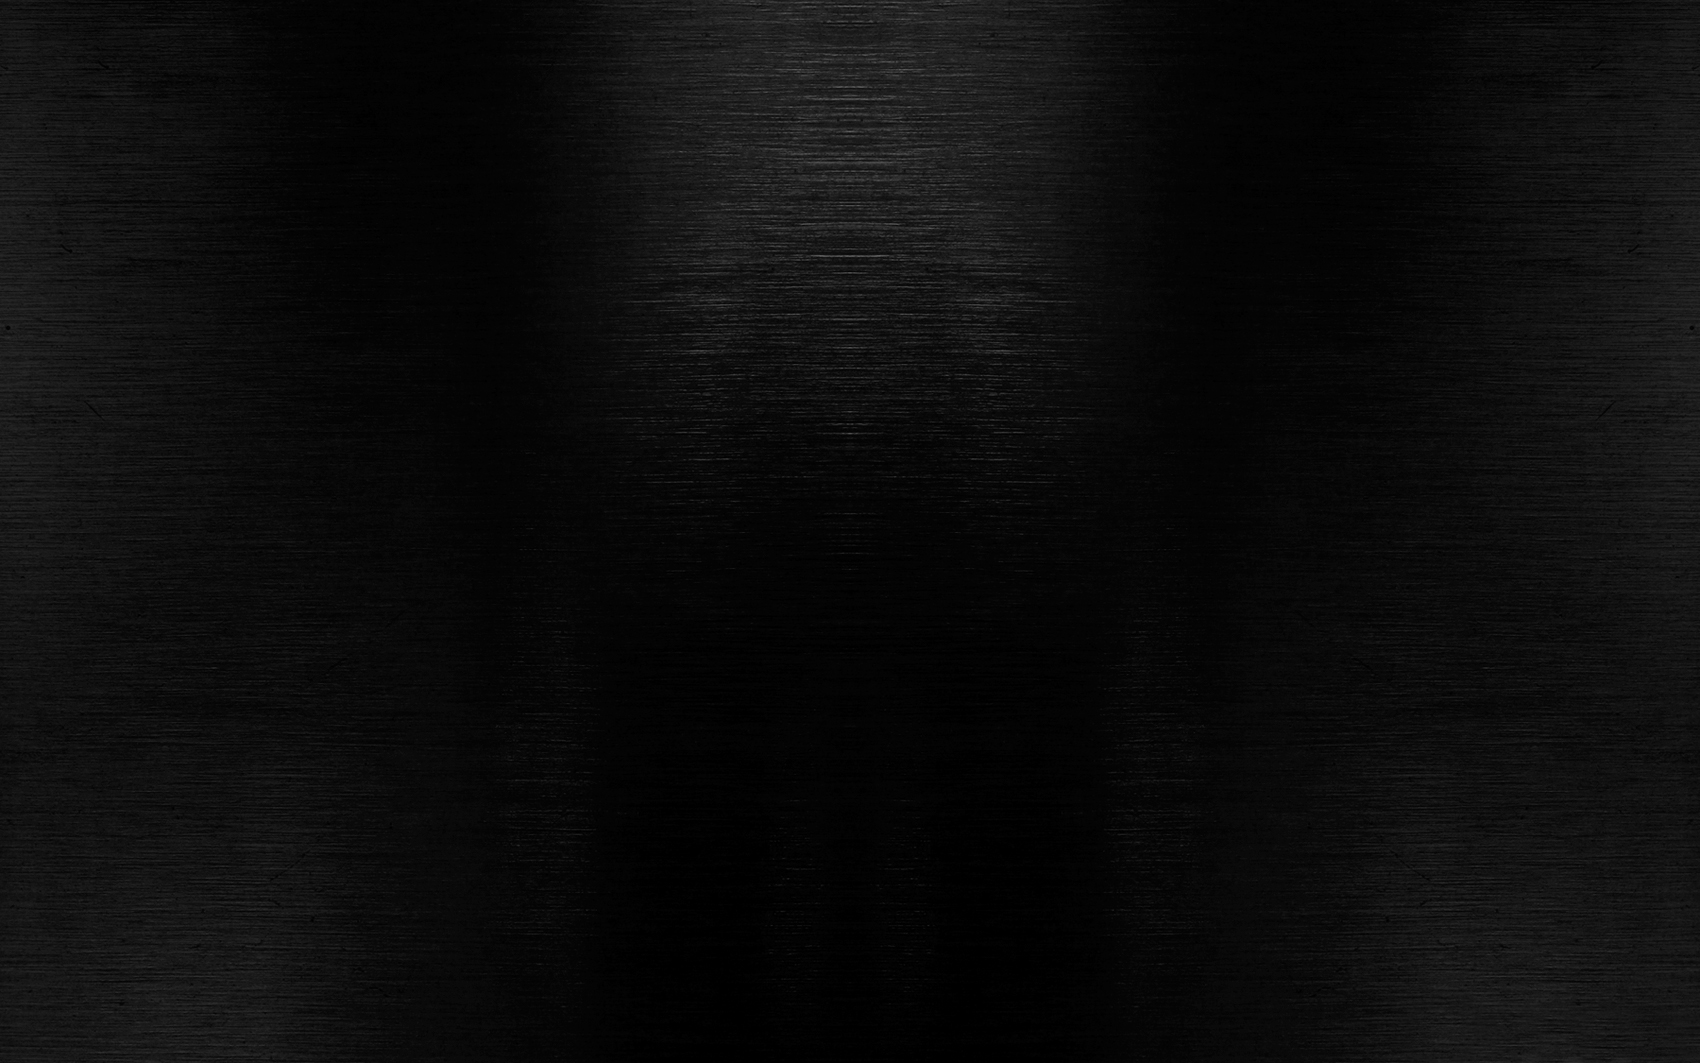 Shiny Black Metal Texture   Home Decorating Ideas 1700x1063